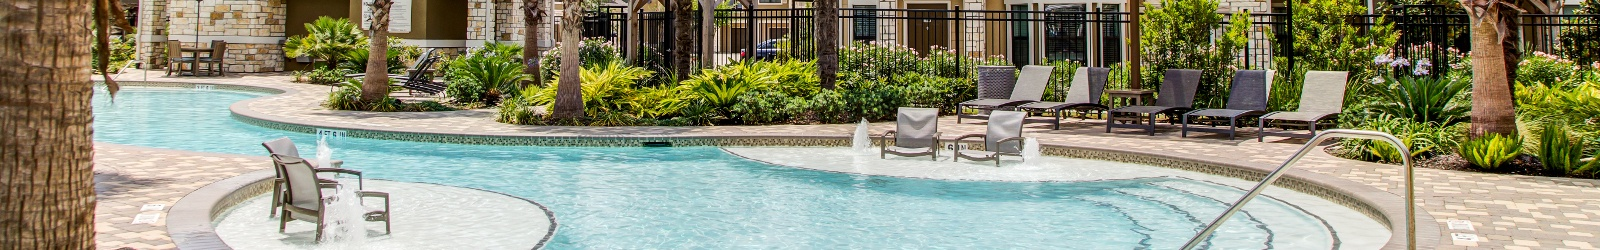 Contact Avenues at Tuscan Lakes for information about our apartments in League City